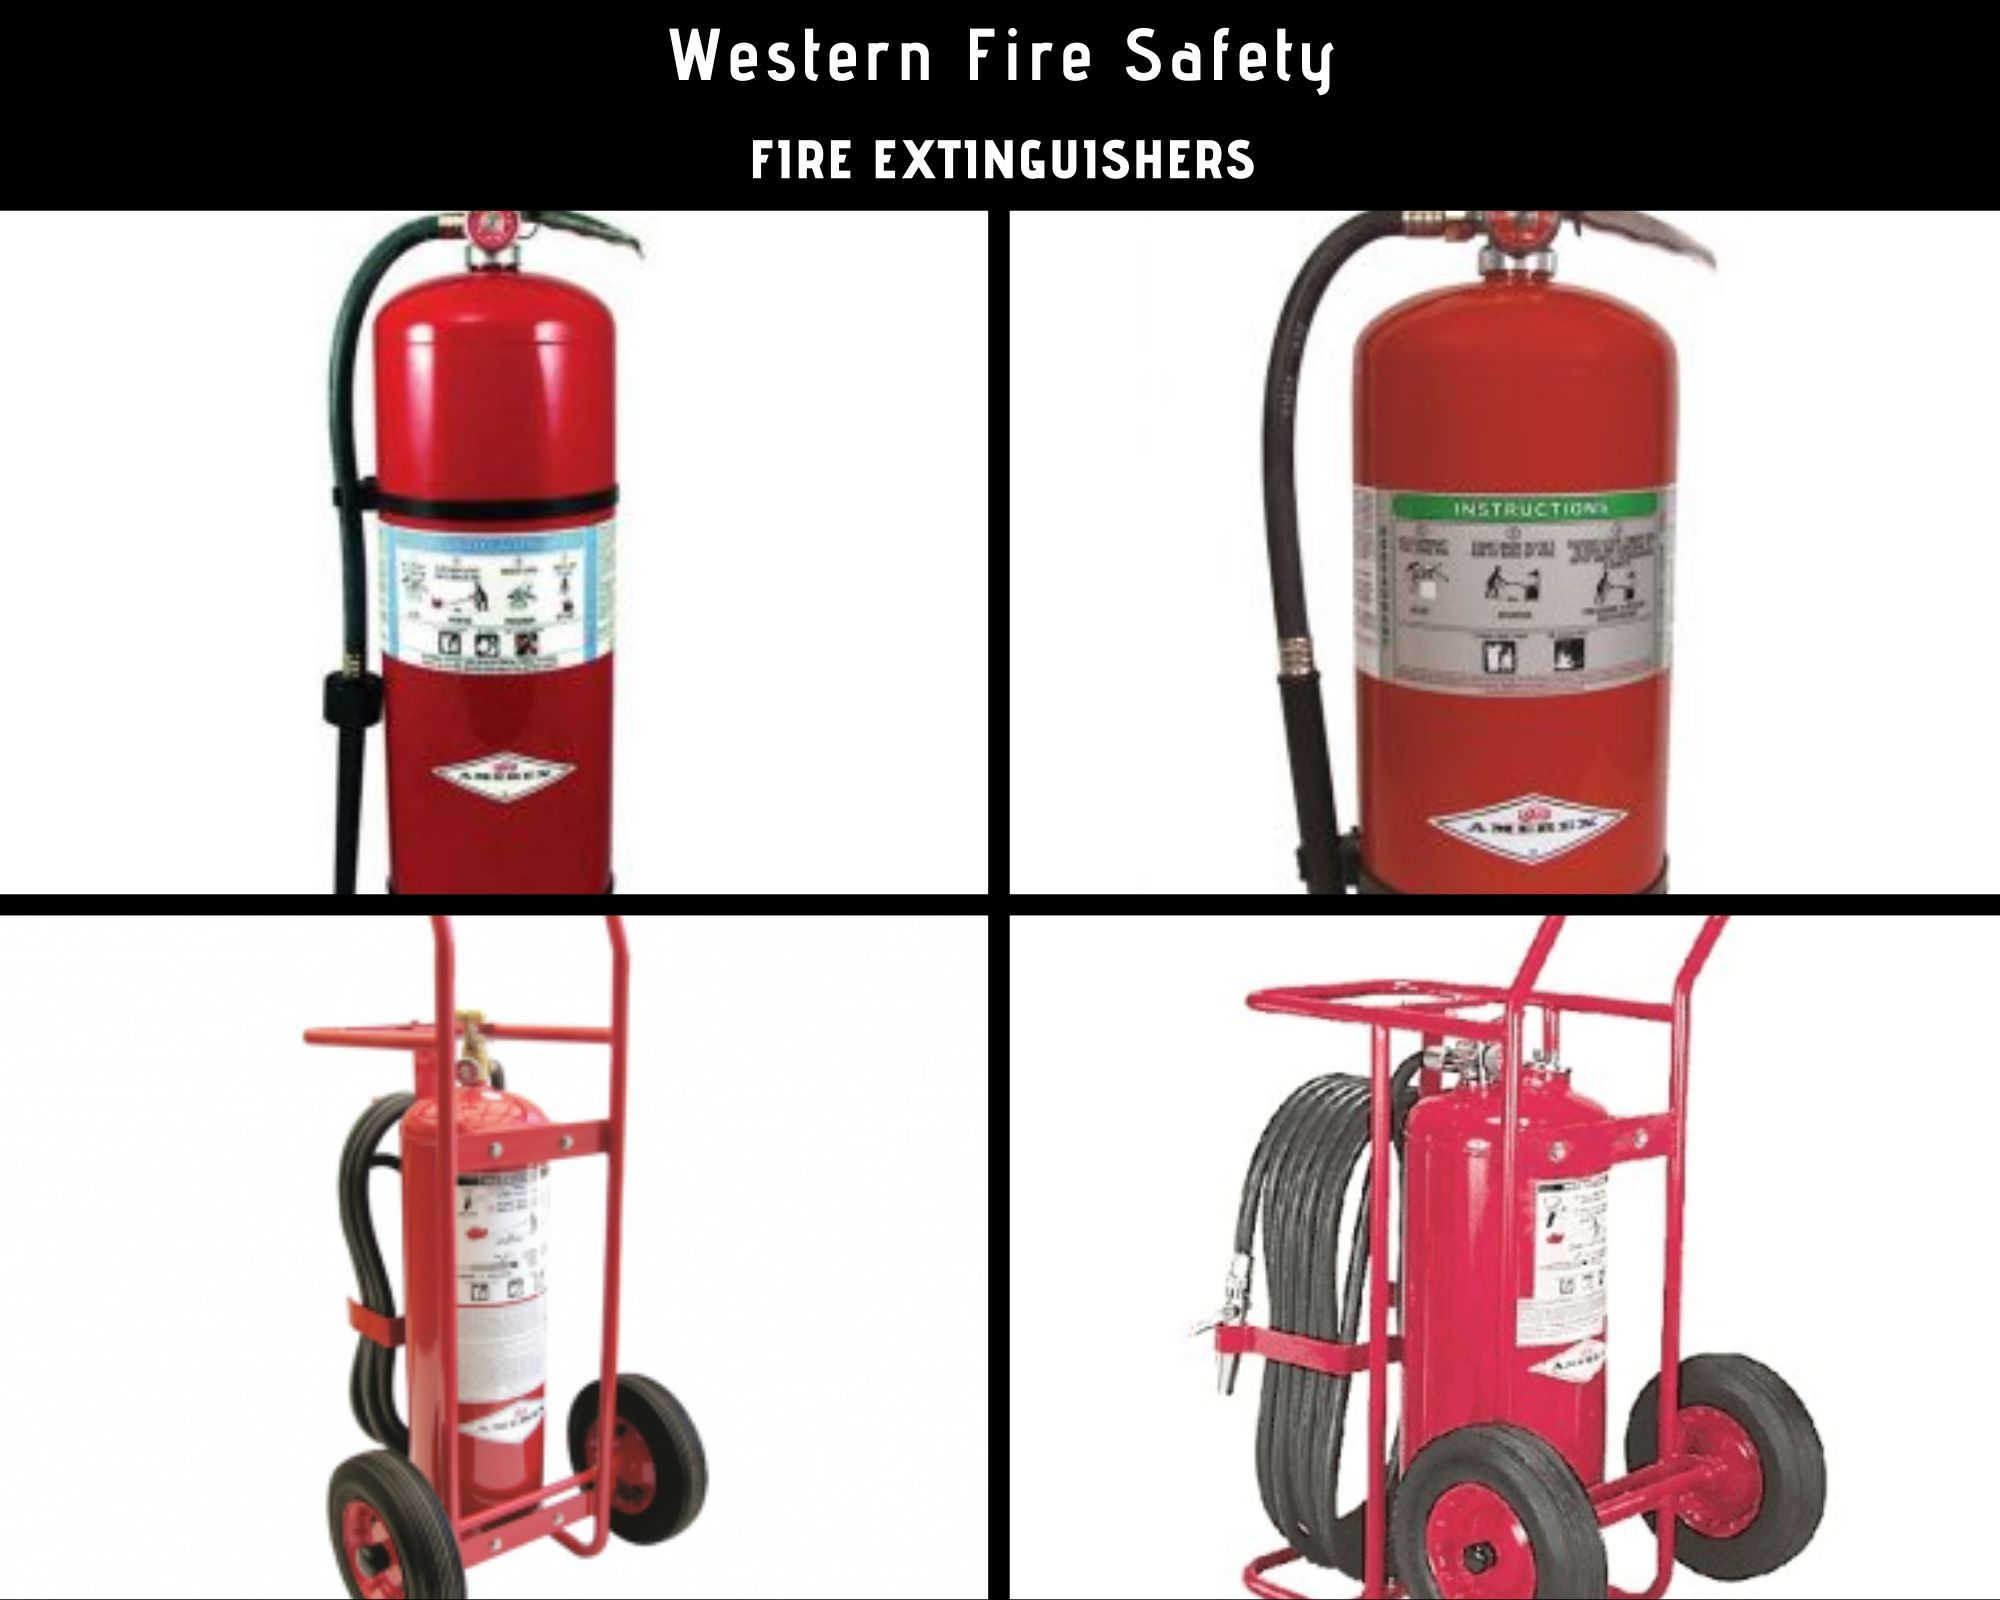 Western Fire and Safety is one of the best suppliers of